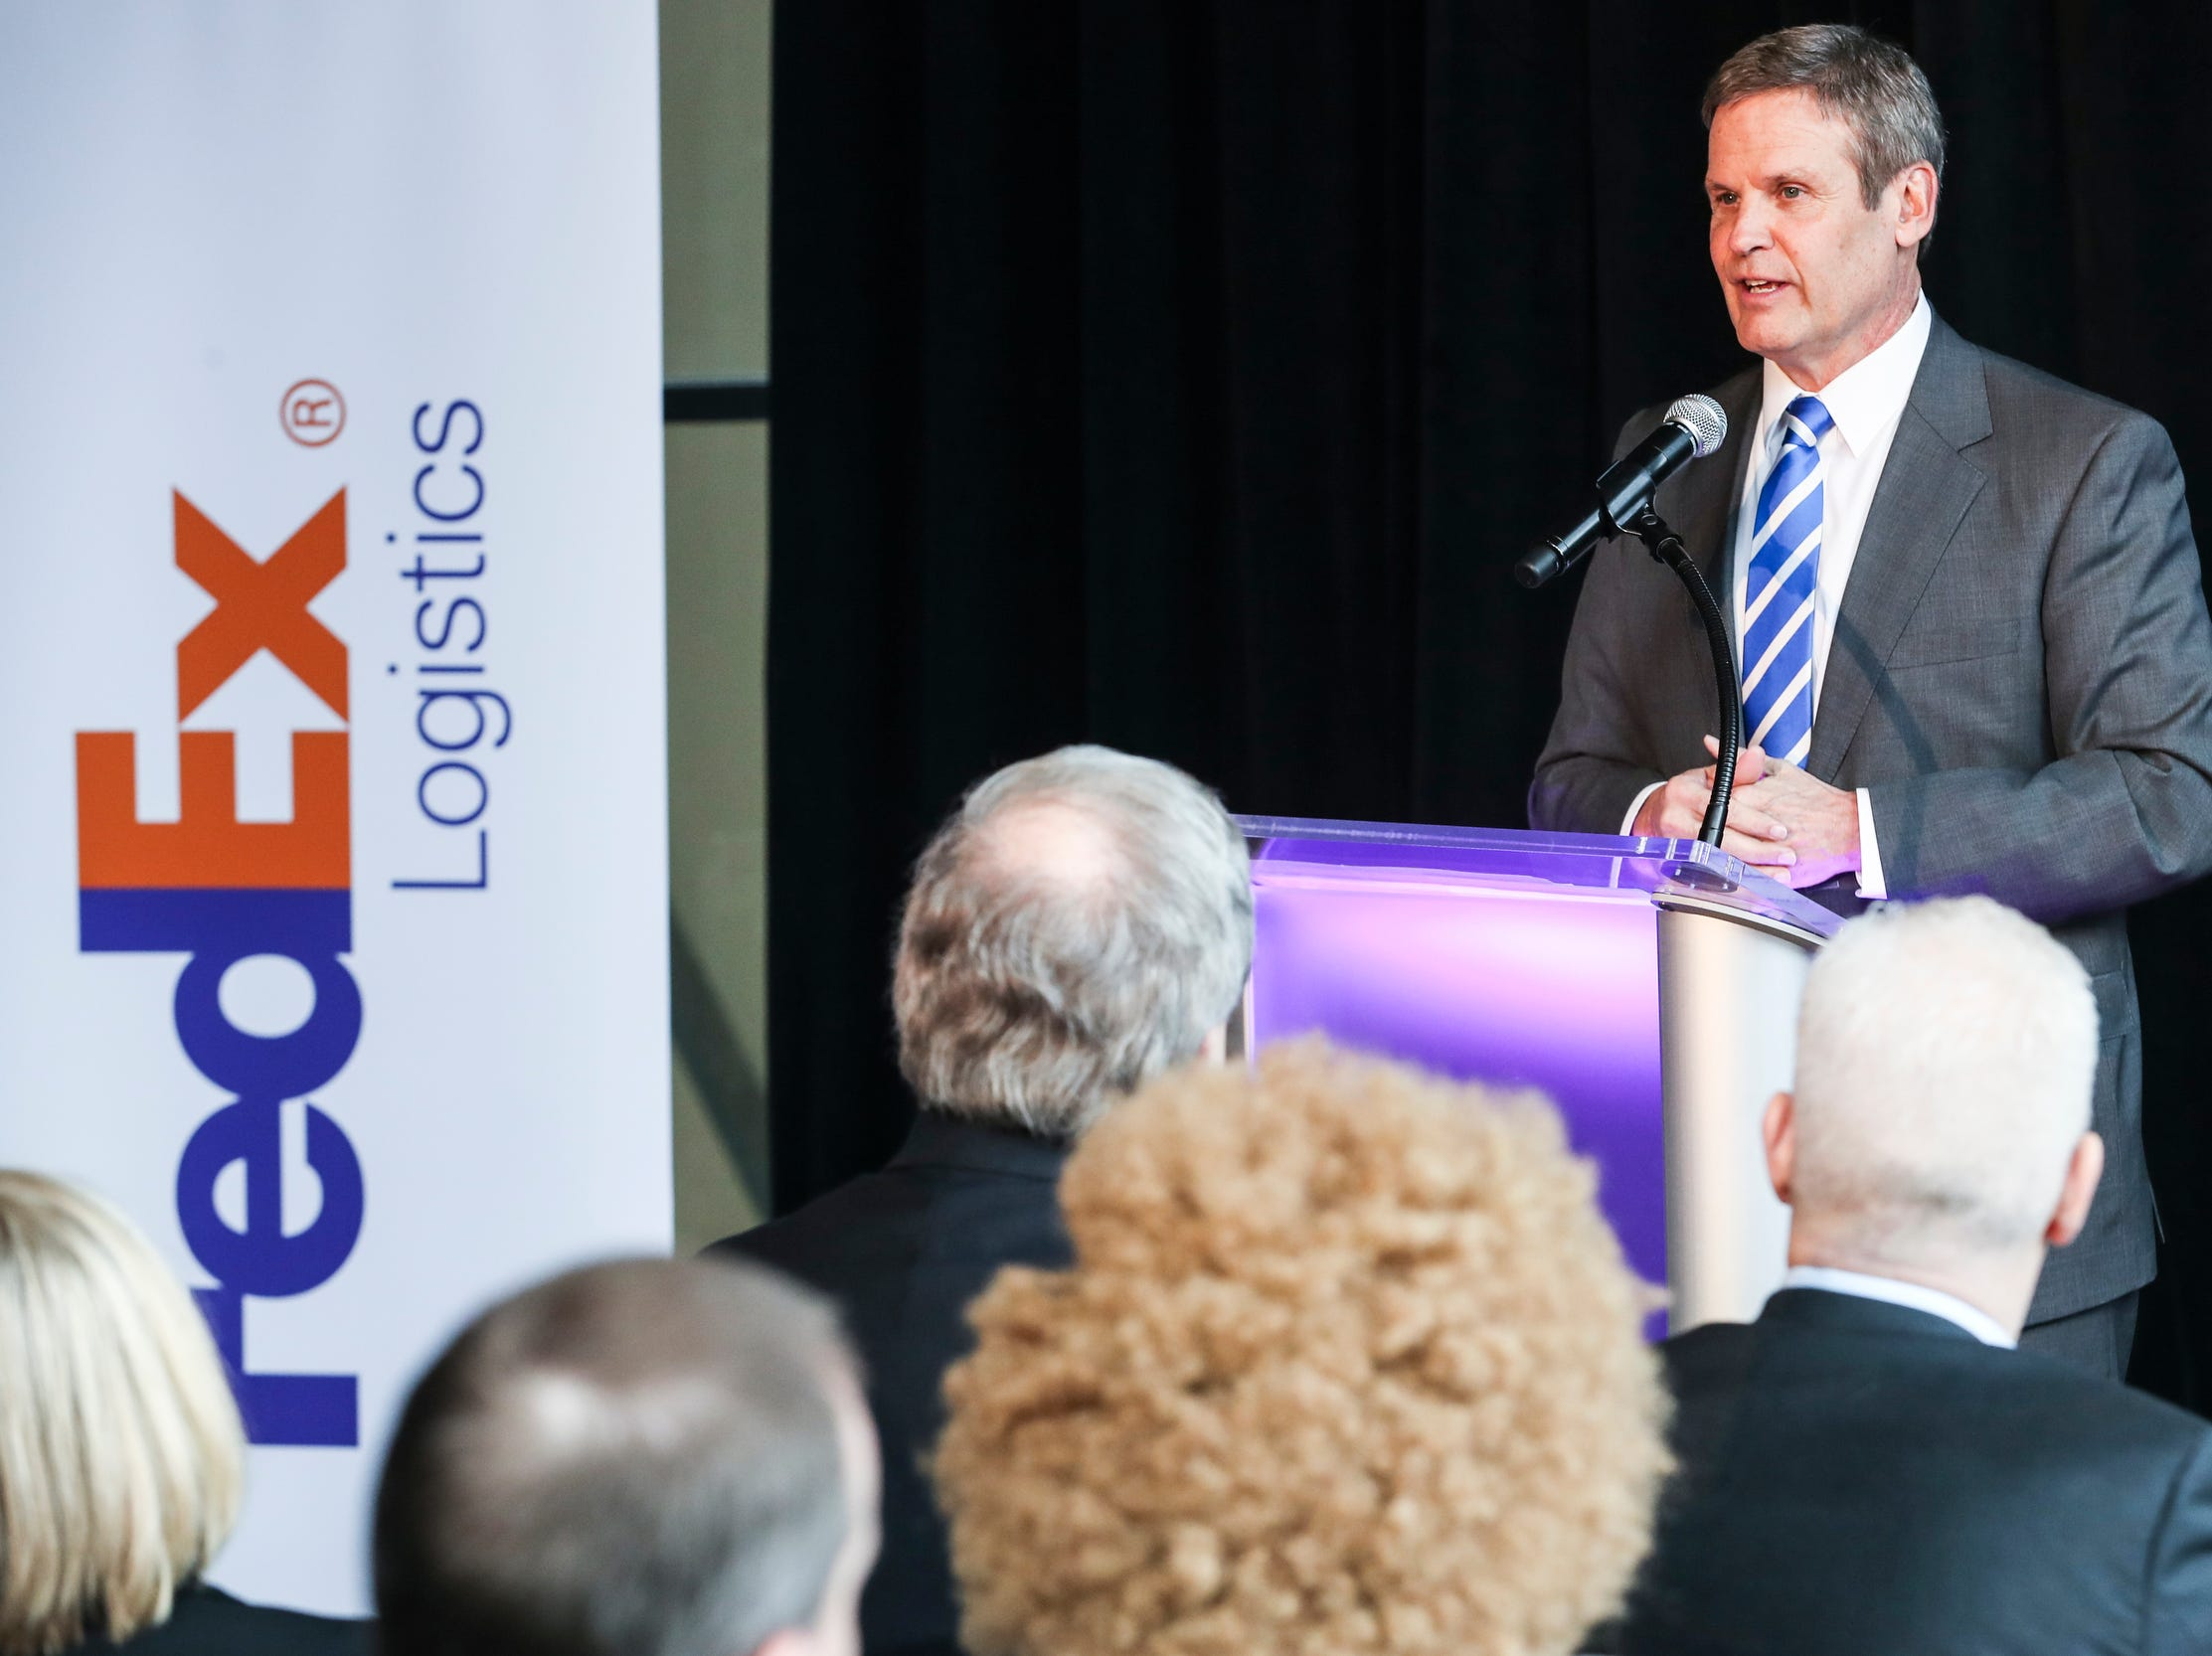 Gov. Bill Lee speaks during the announcement that FedEx Logistics is relocating to the Gibson Guitar Building Feb. 12, 2019. Gov. Bill Lee and local officials made the announcement at the former guitar factory off Beale Street. This is Lee's first economic development announcement since taking office.